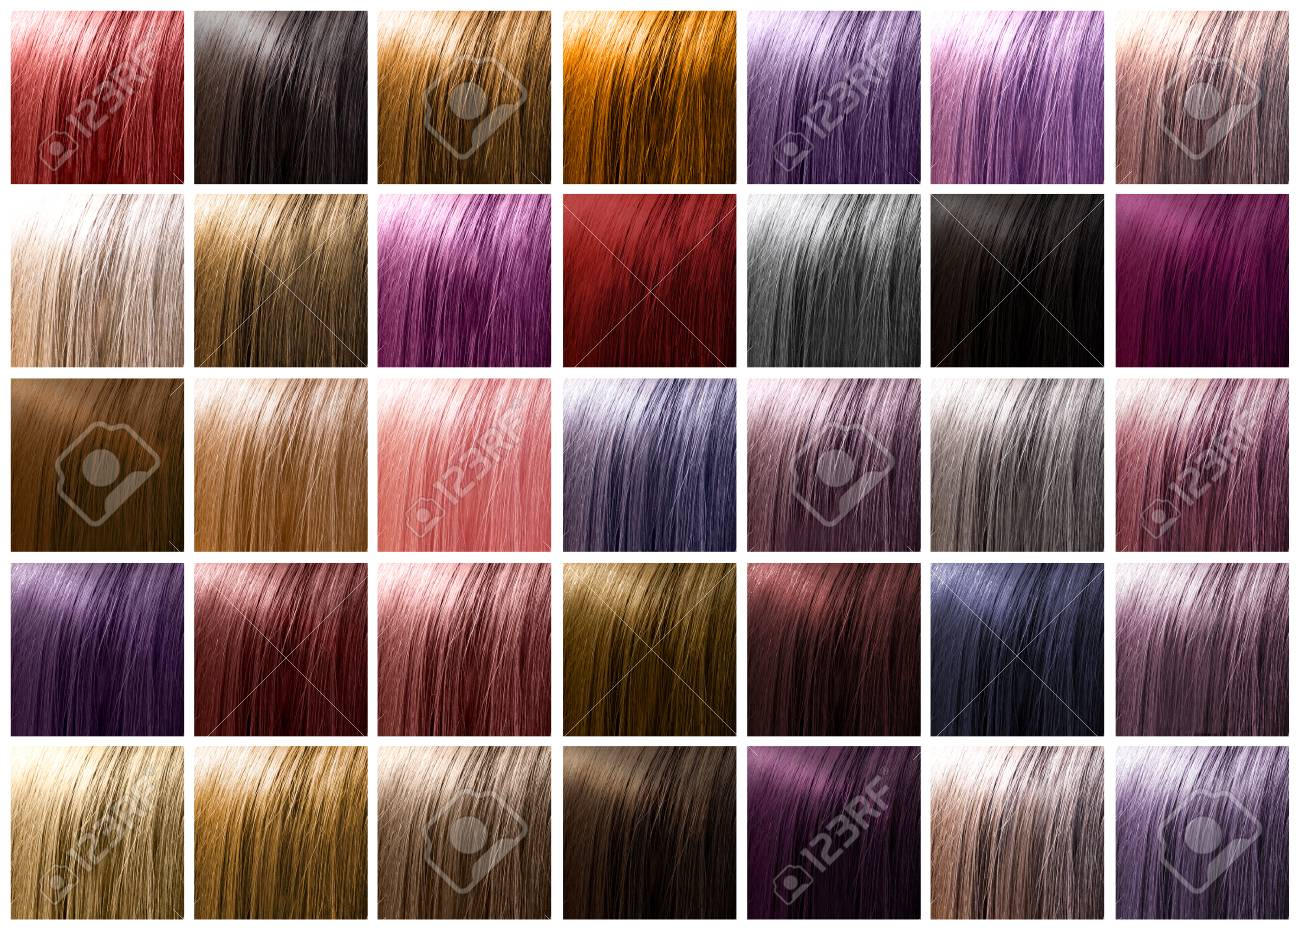 Colorful hair palette background. Hairstyles and care concept